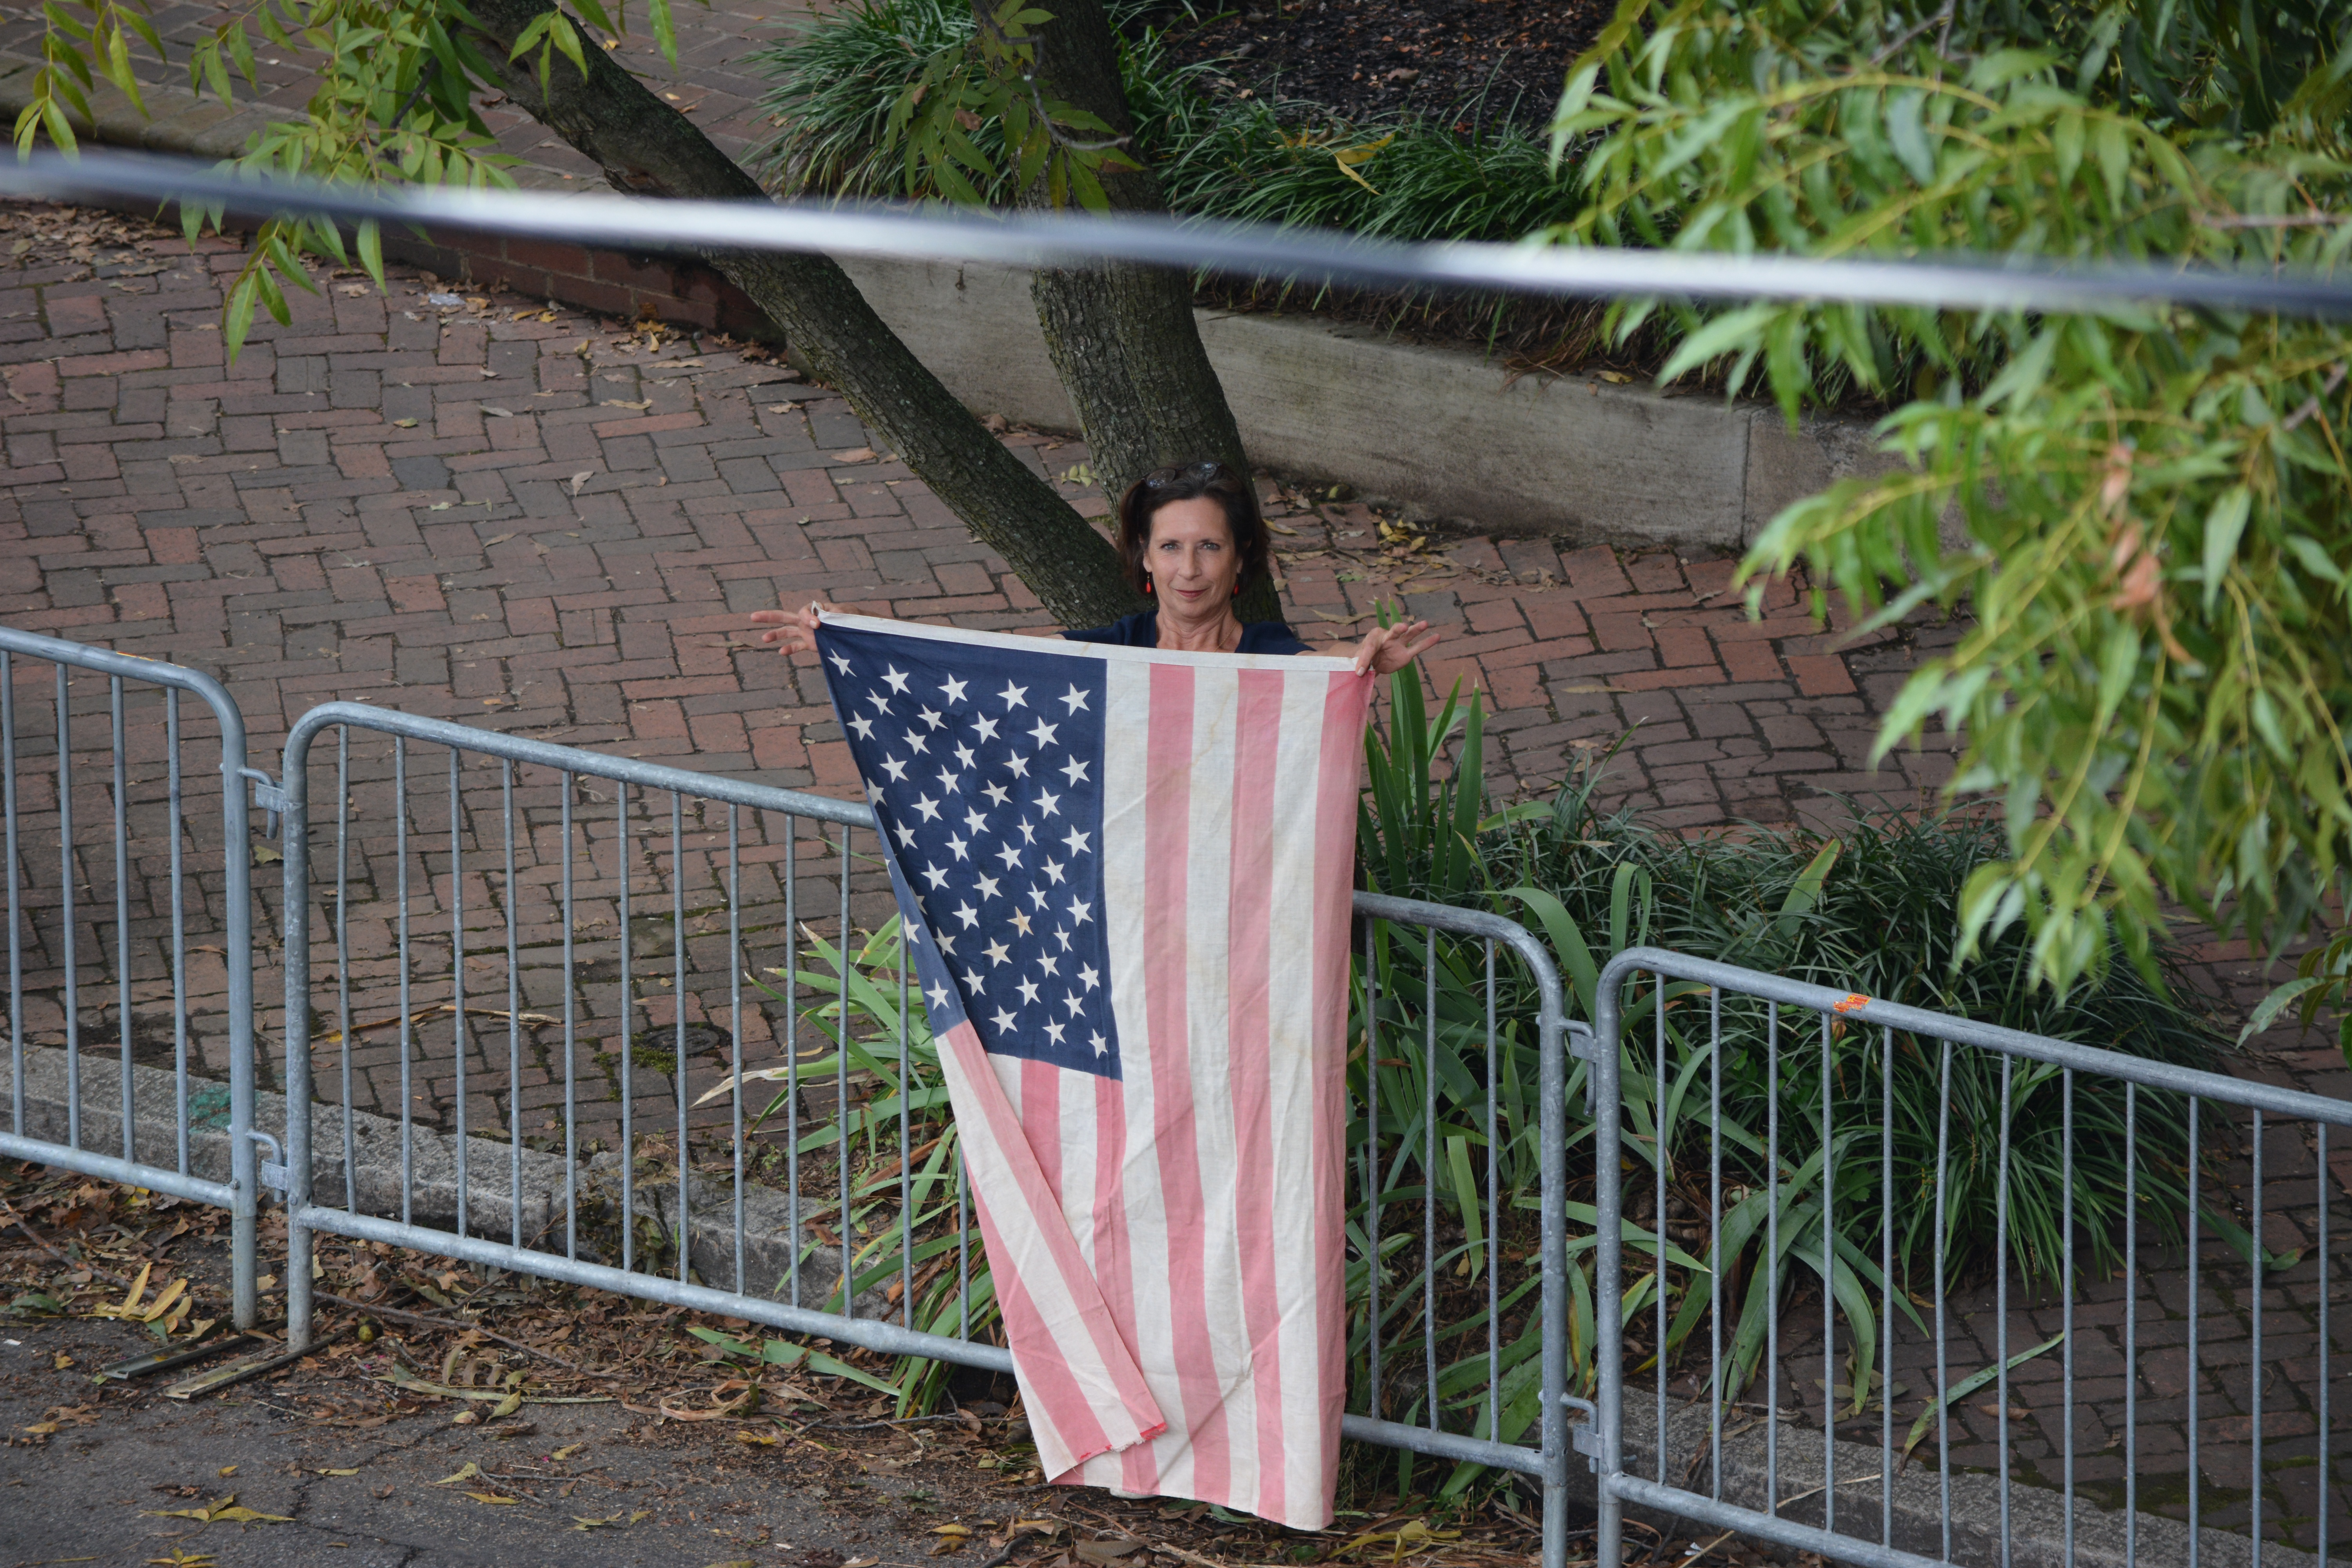 A long time Libby Hill Resident holds up her grandmother's american flag accross a Richmond 2015 barricade